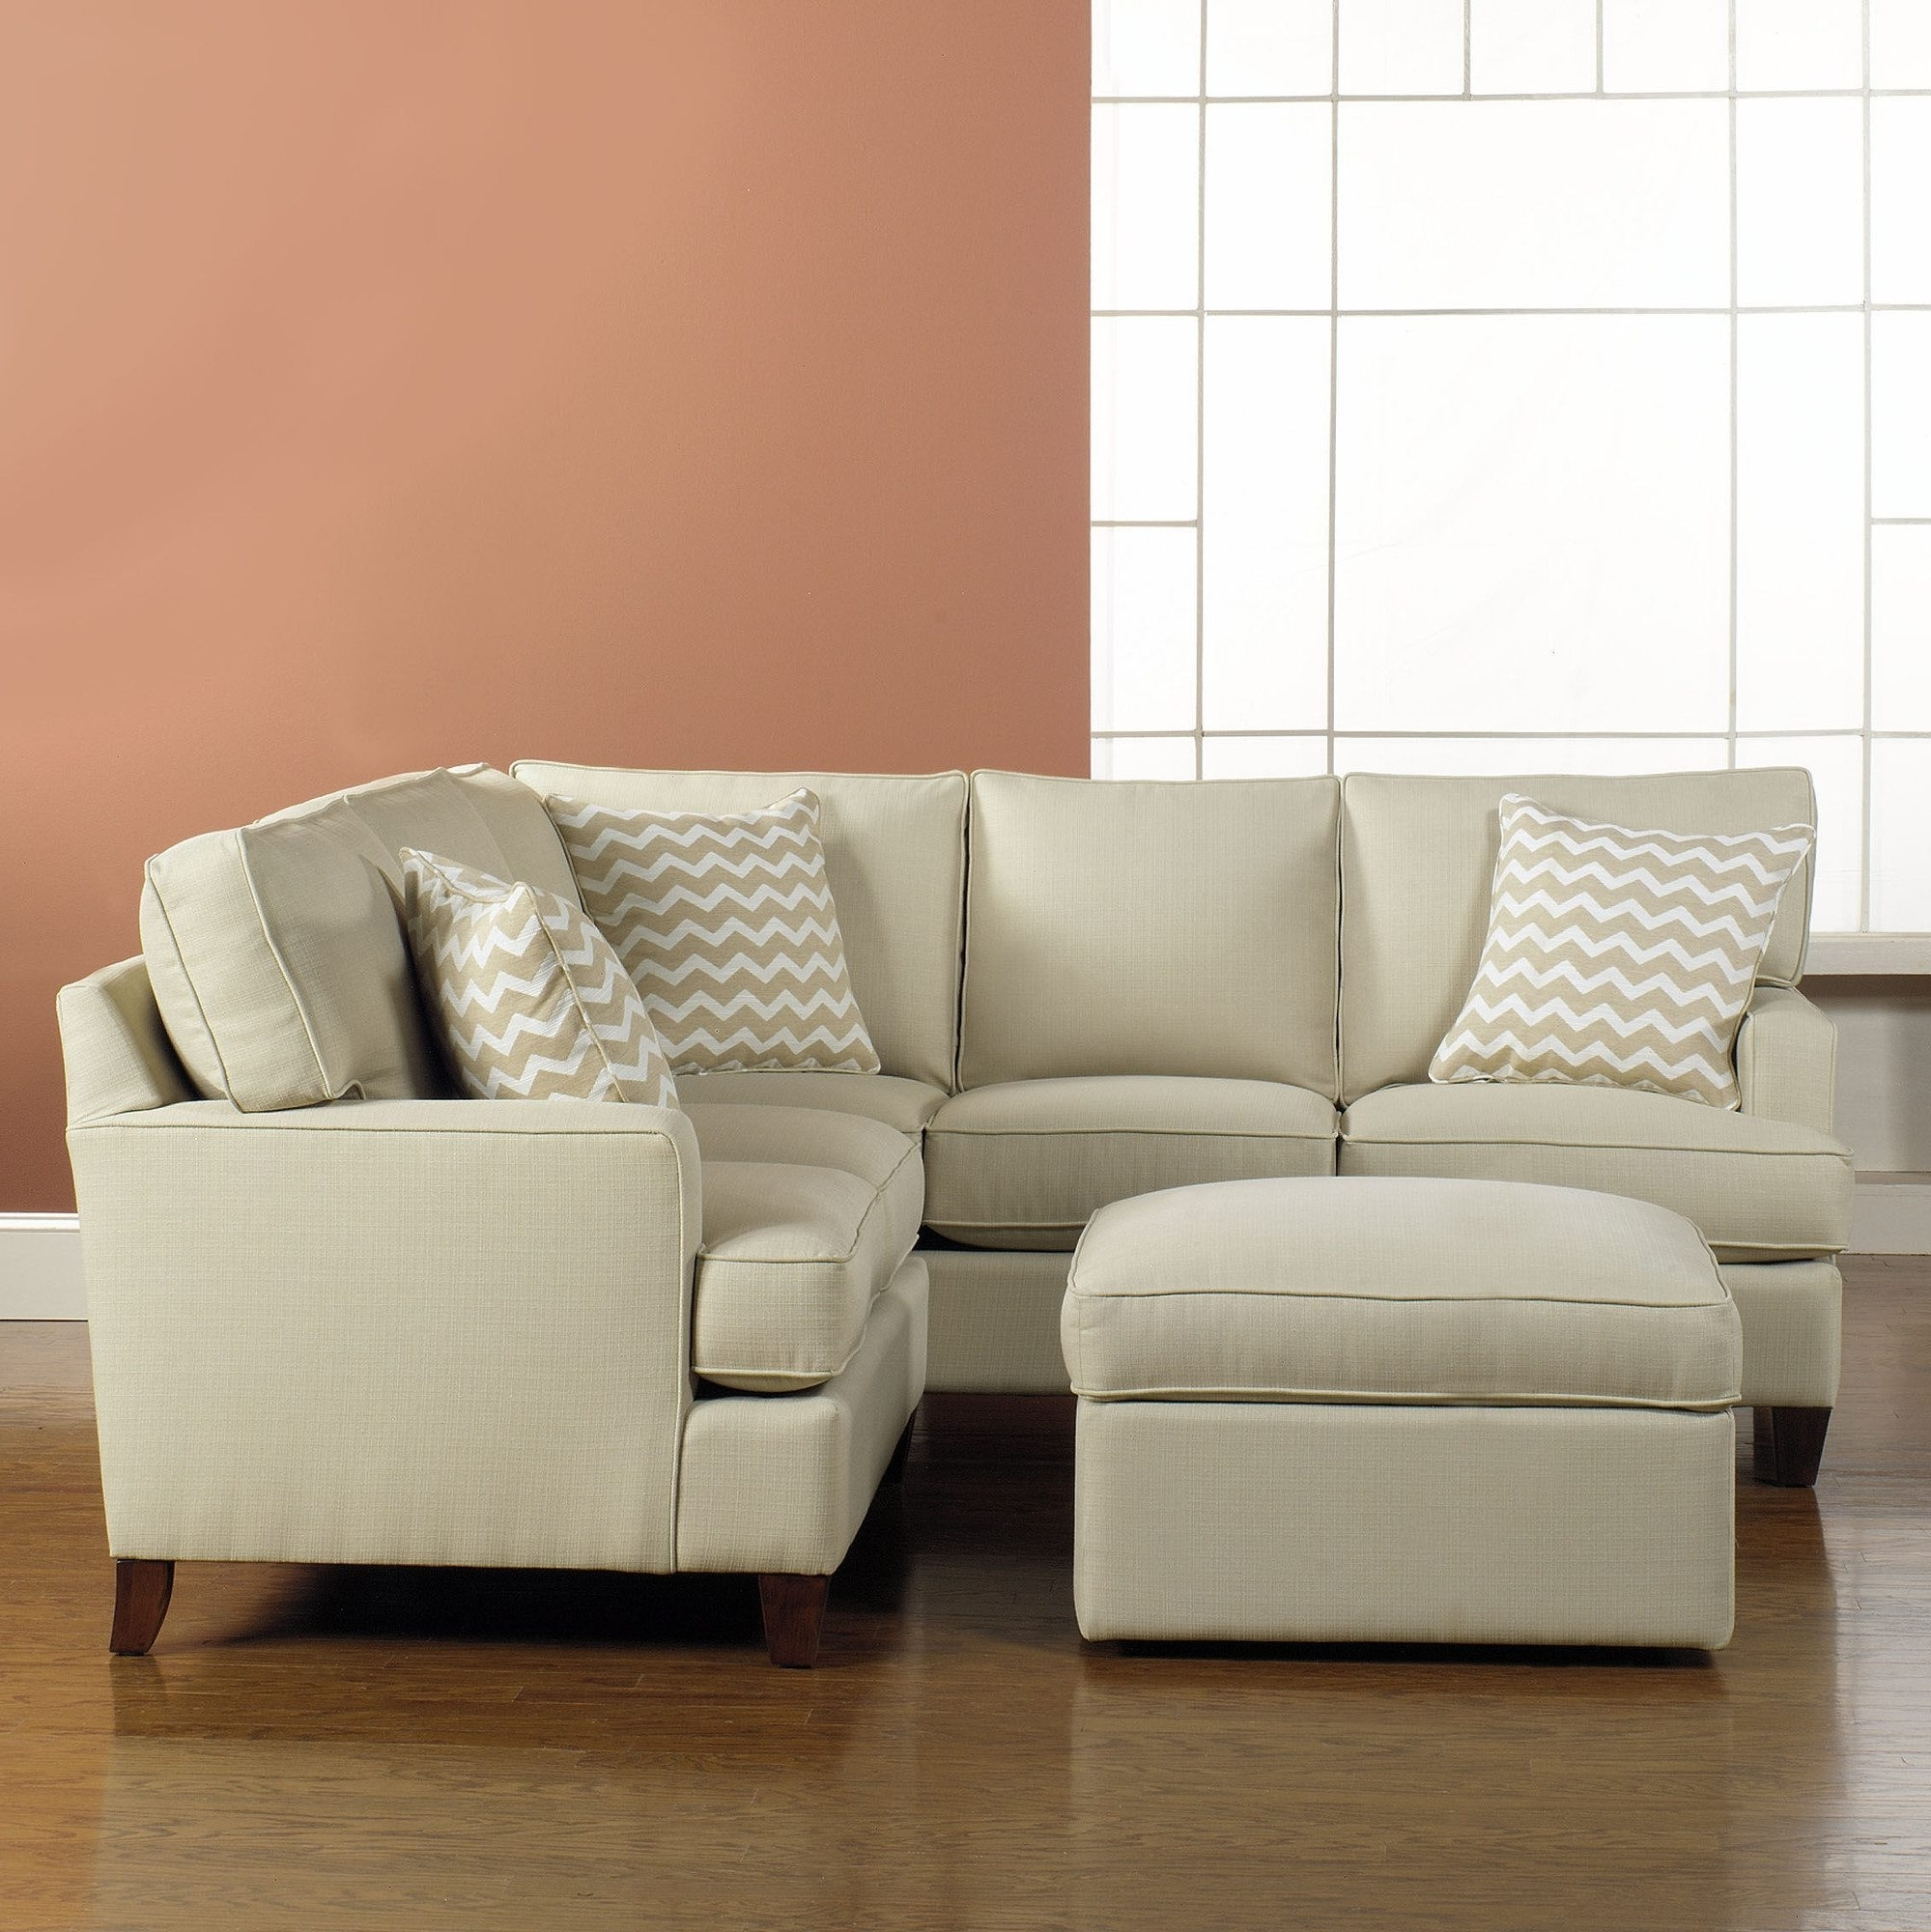 San Francisco Sectional Sofas Pertaining To Fashionable Sectional Sofas San Francisco – Fjellkjeden (View 16 of 20)